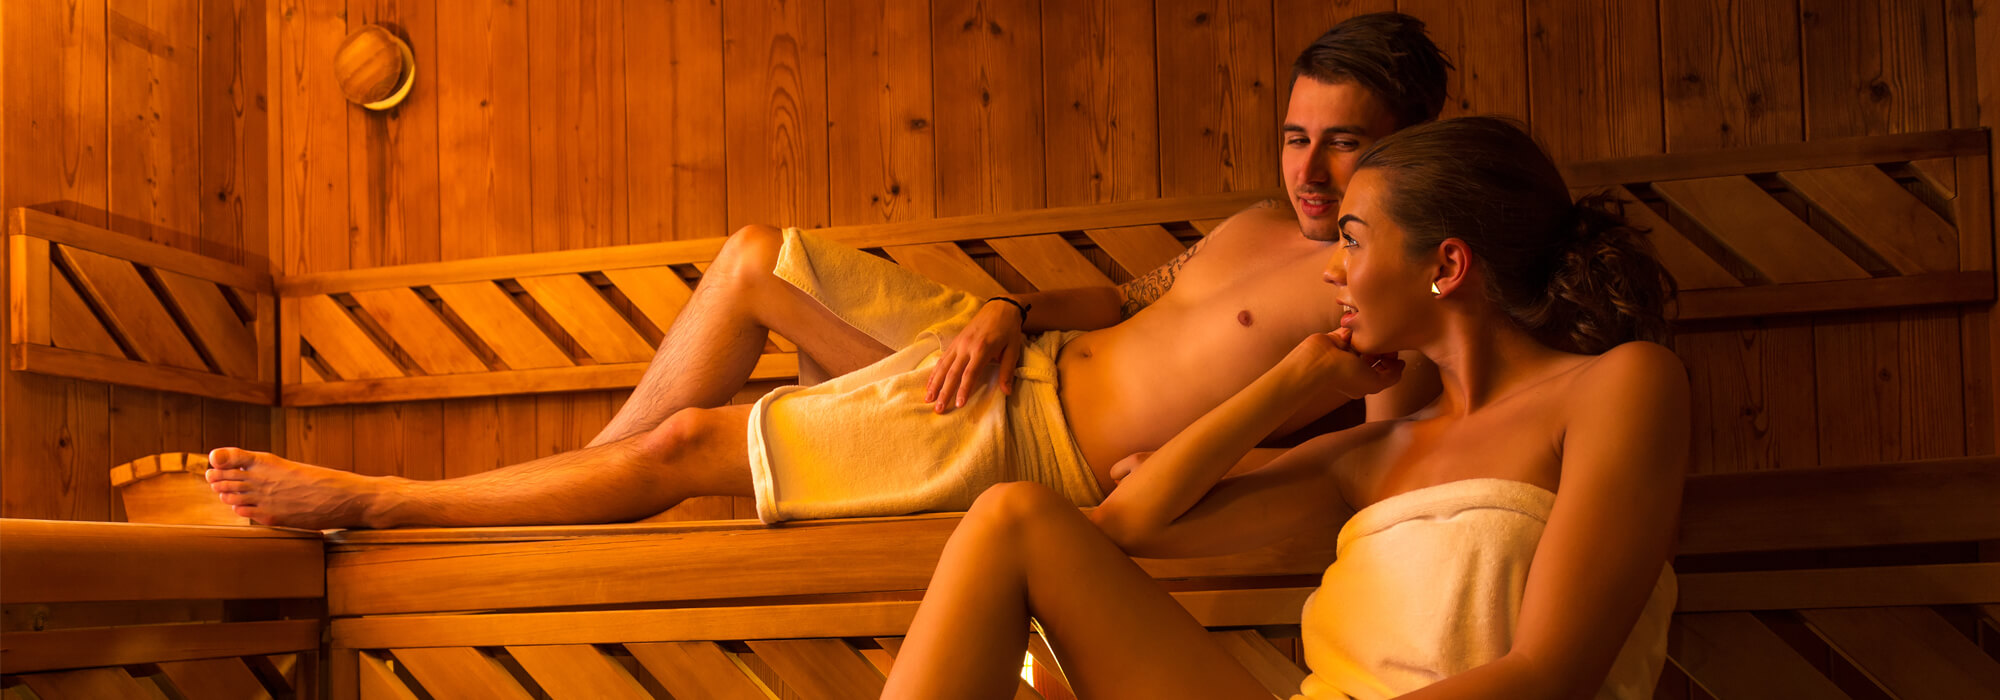 Where is the Fountain of Youth? Inside your Sauna!